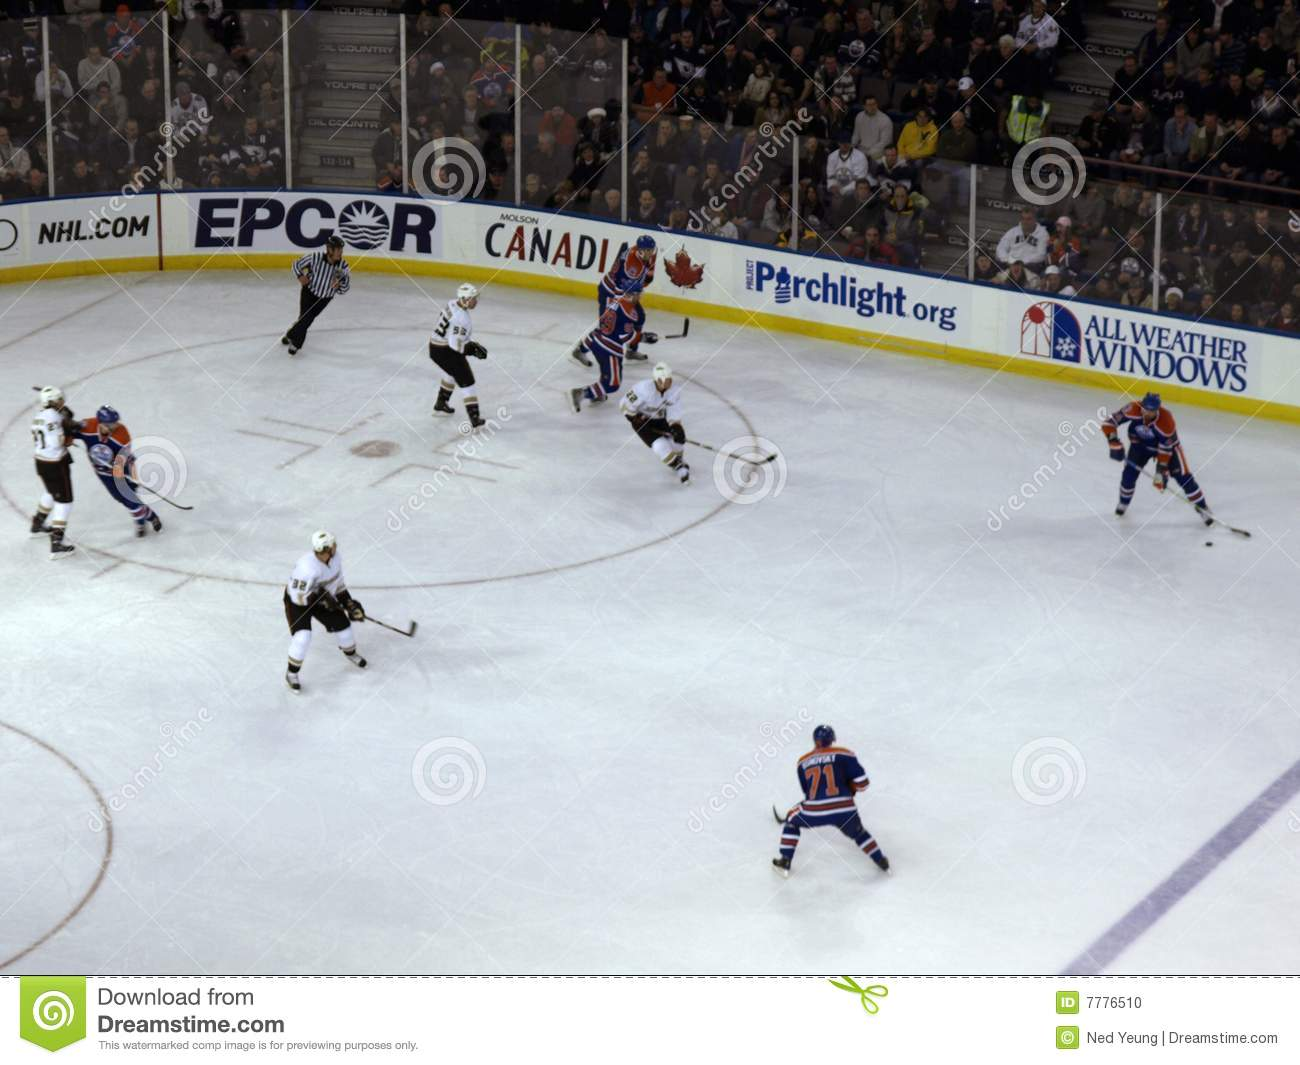 Oilers vs. Mighty Ducks 2